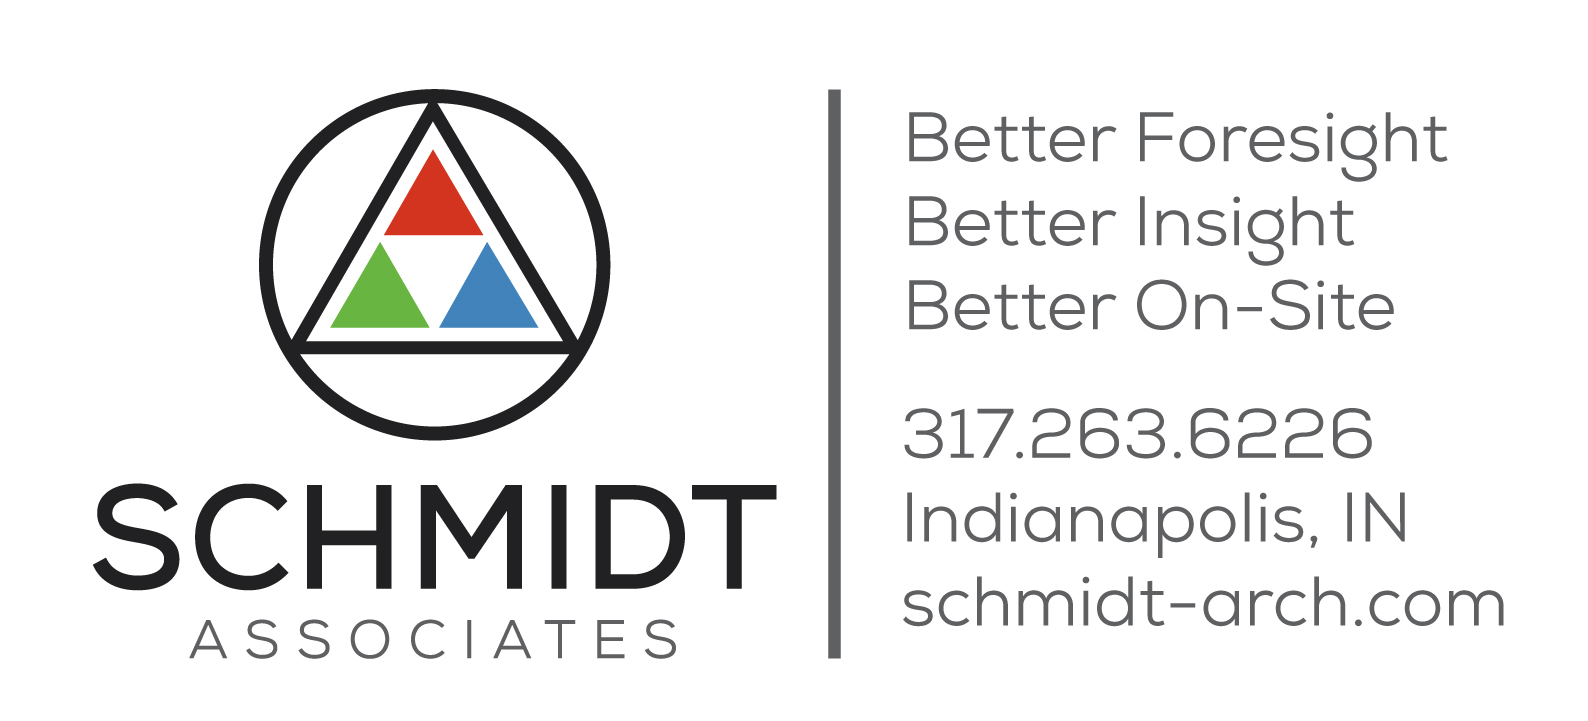 Schmidt Associates, Inc.